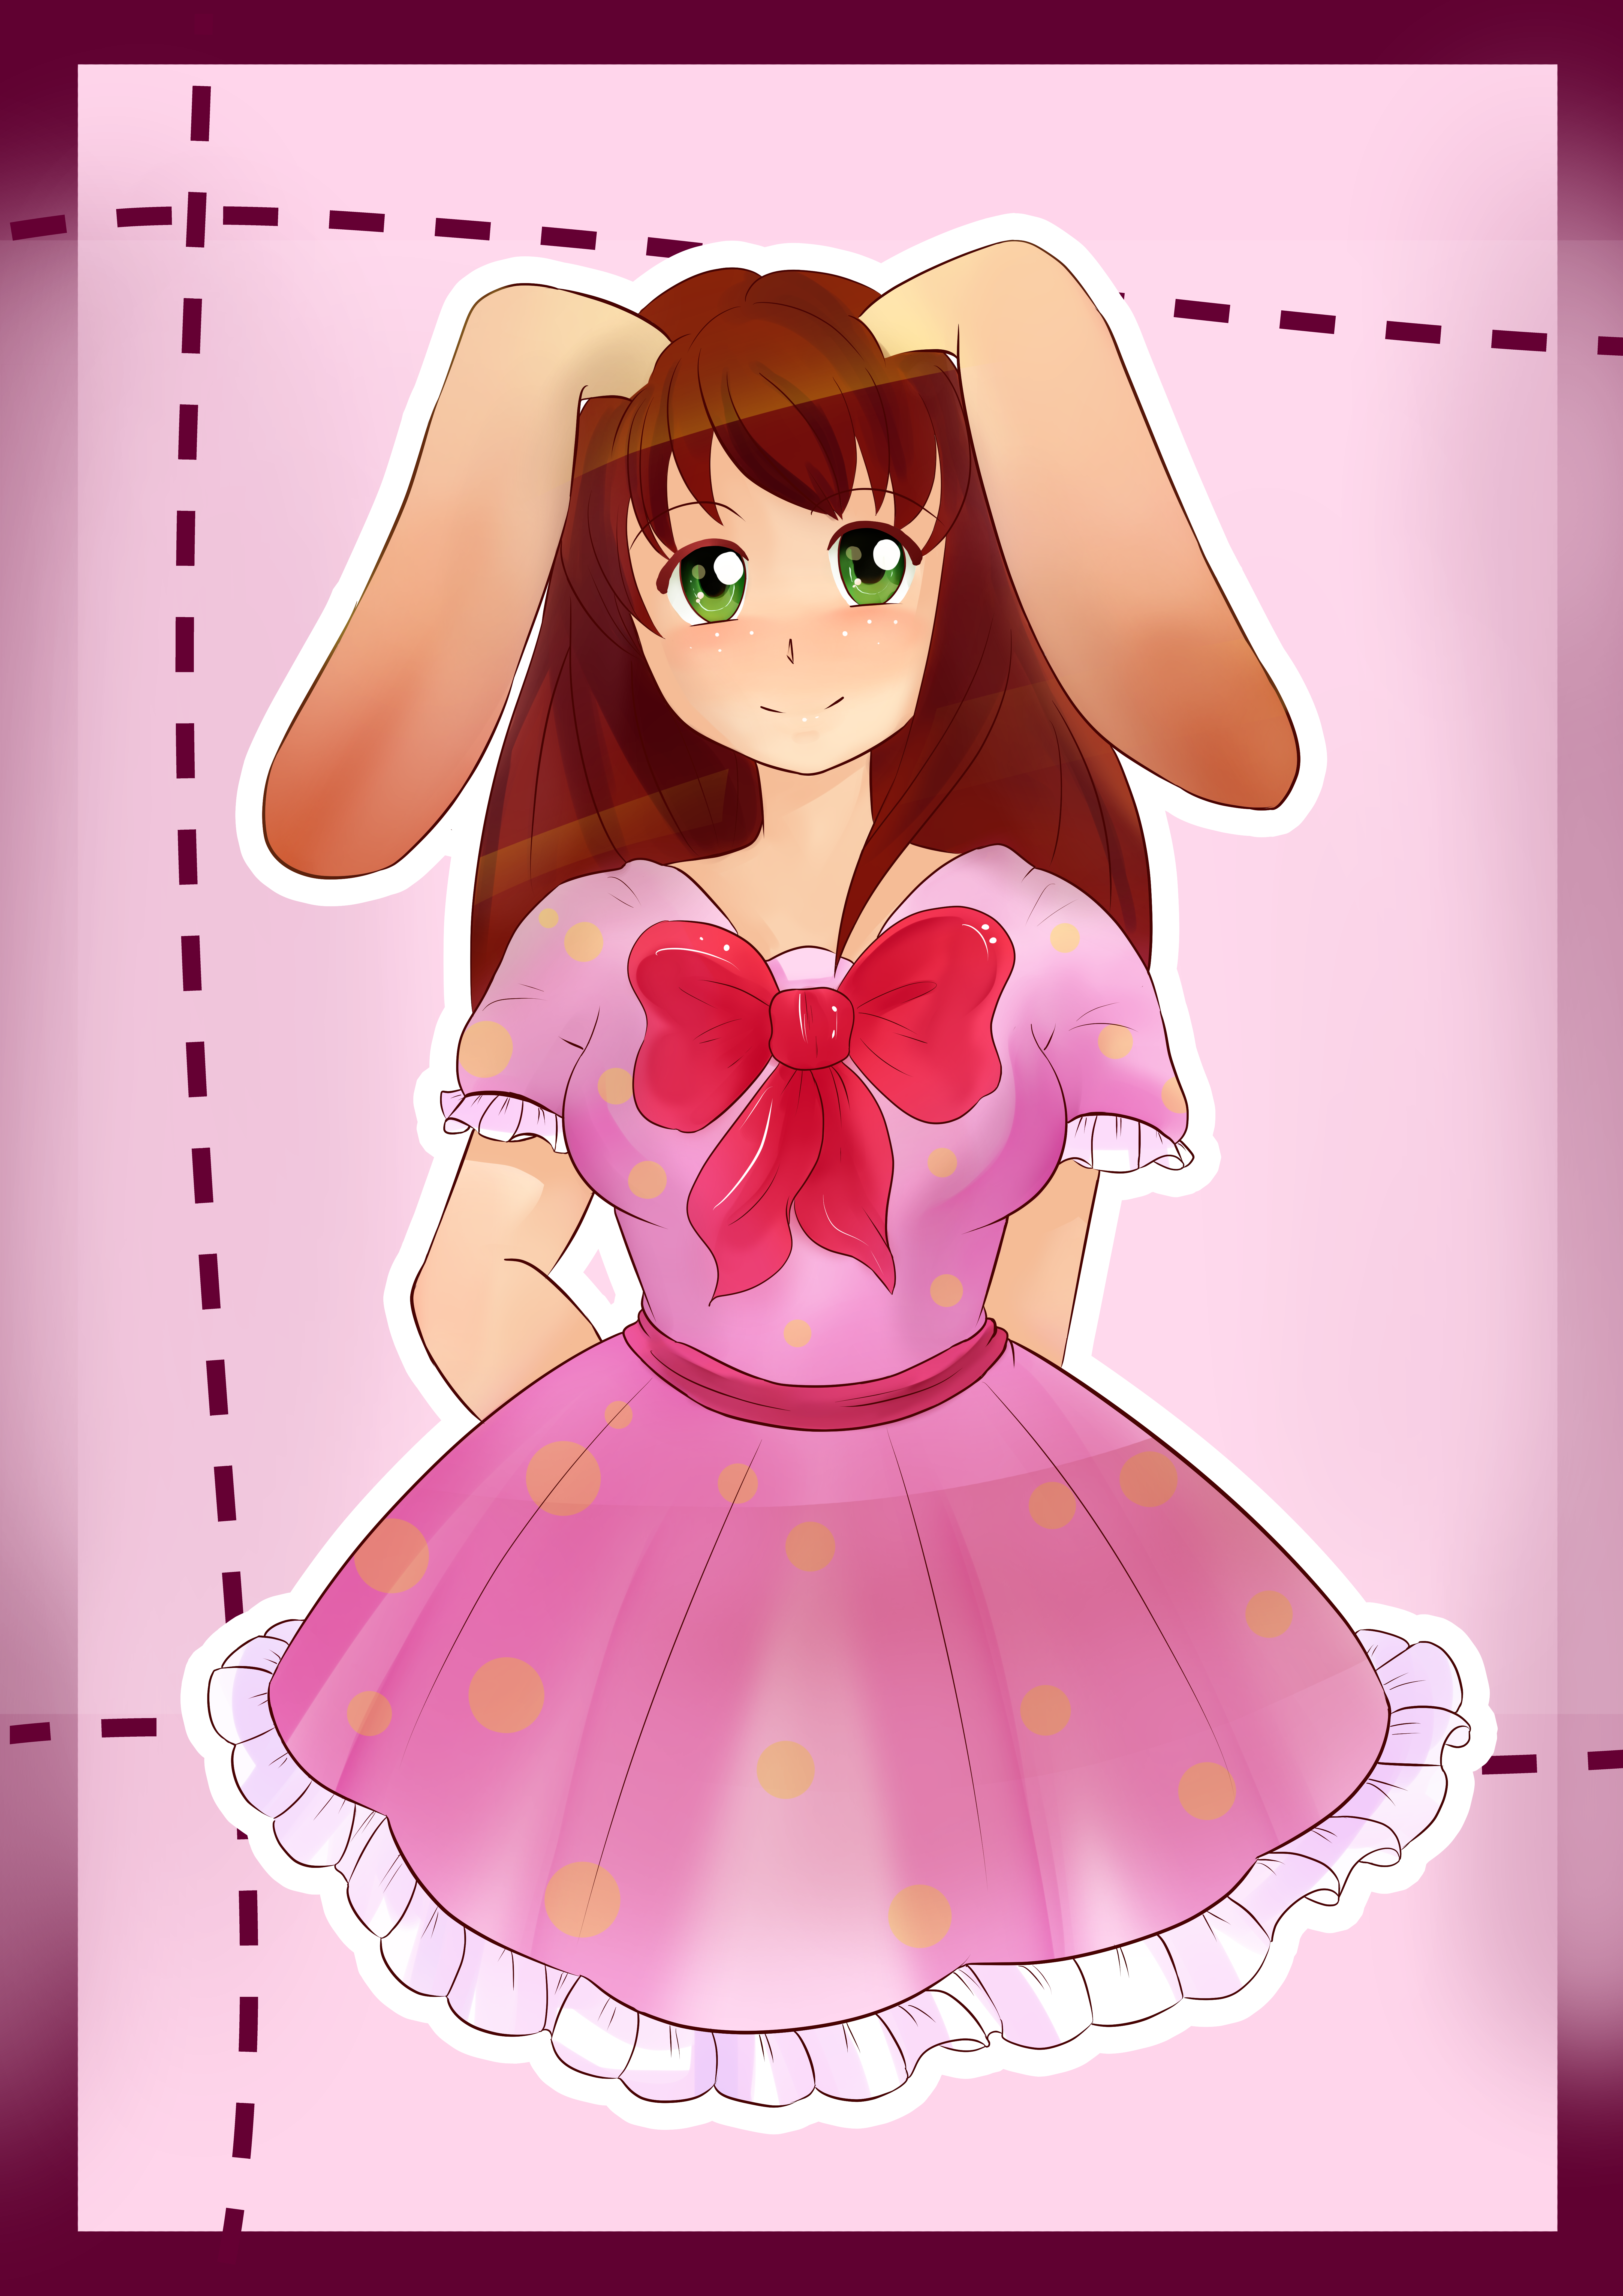 Bunny Girl by Chyche